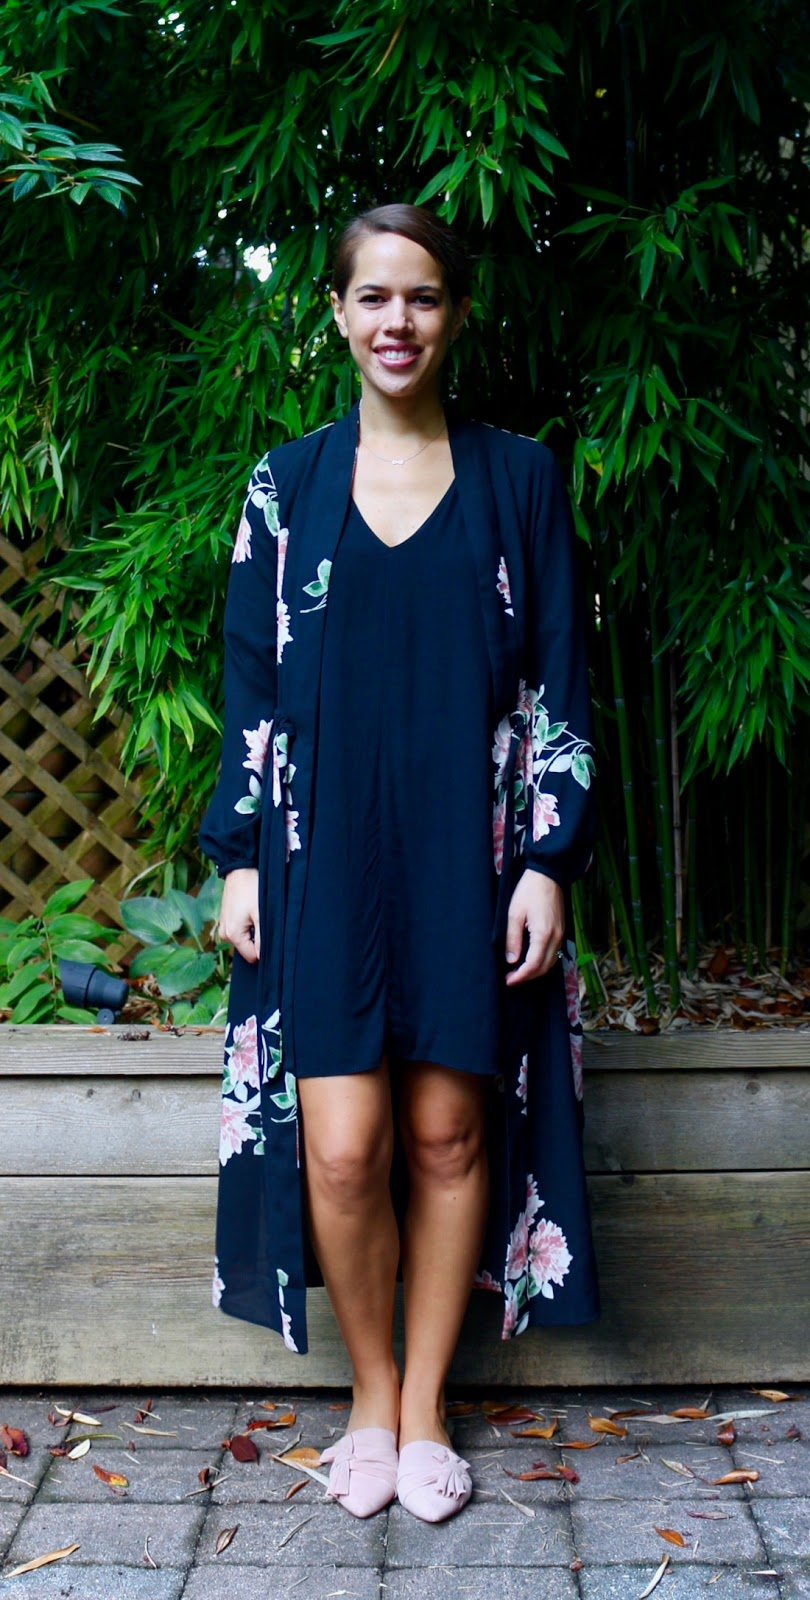 Jules in Flats - Maxi Kimono with Dress (Business Casual Fall Workwear on a Budget)